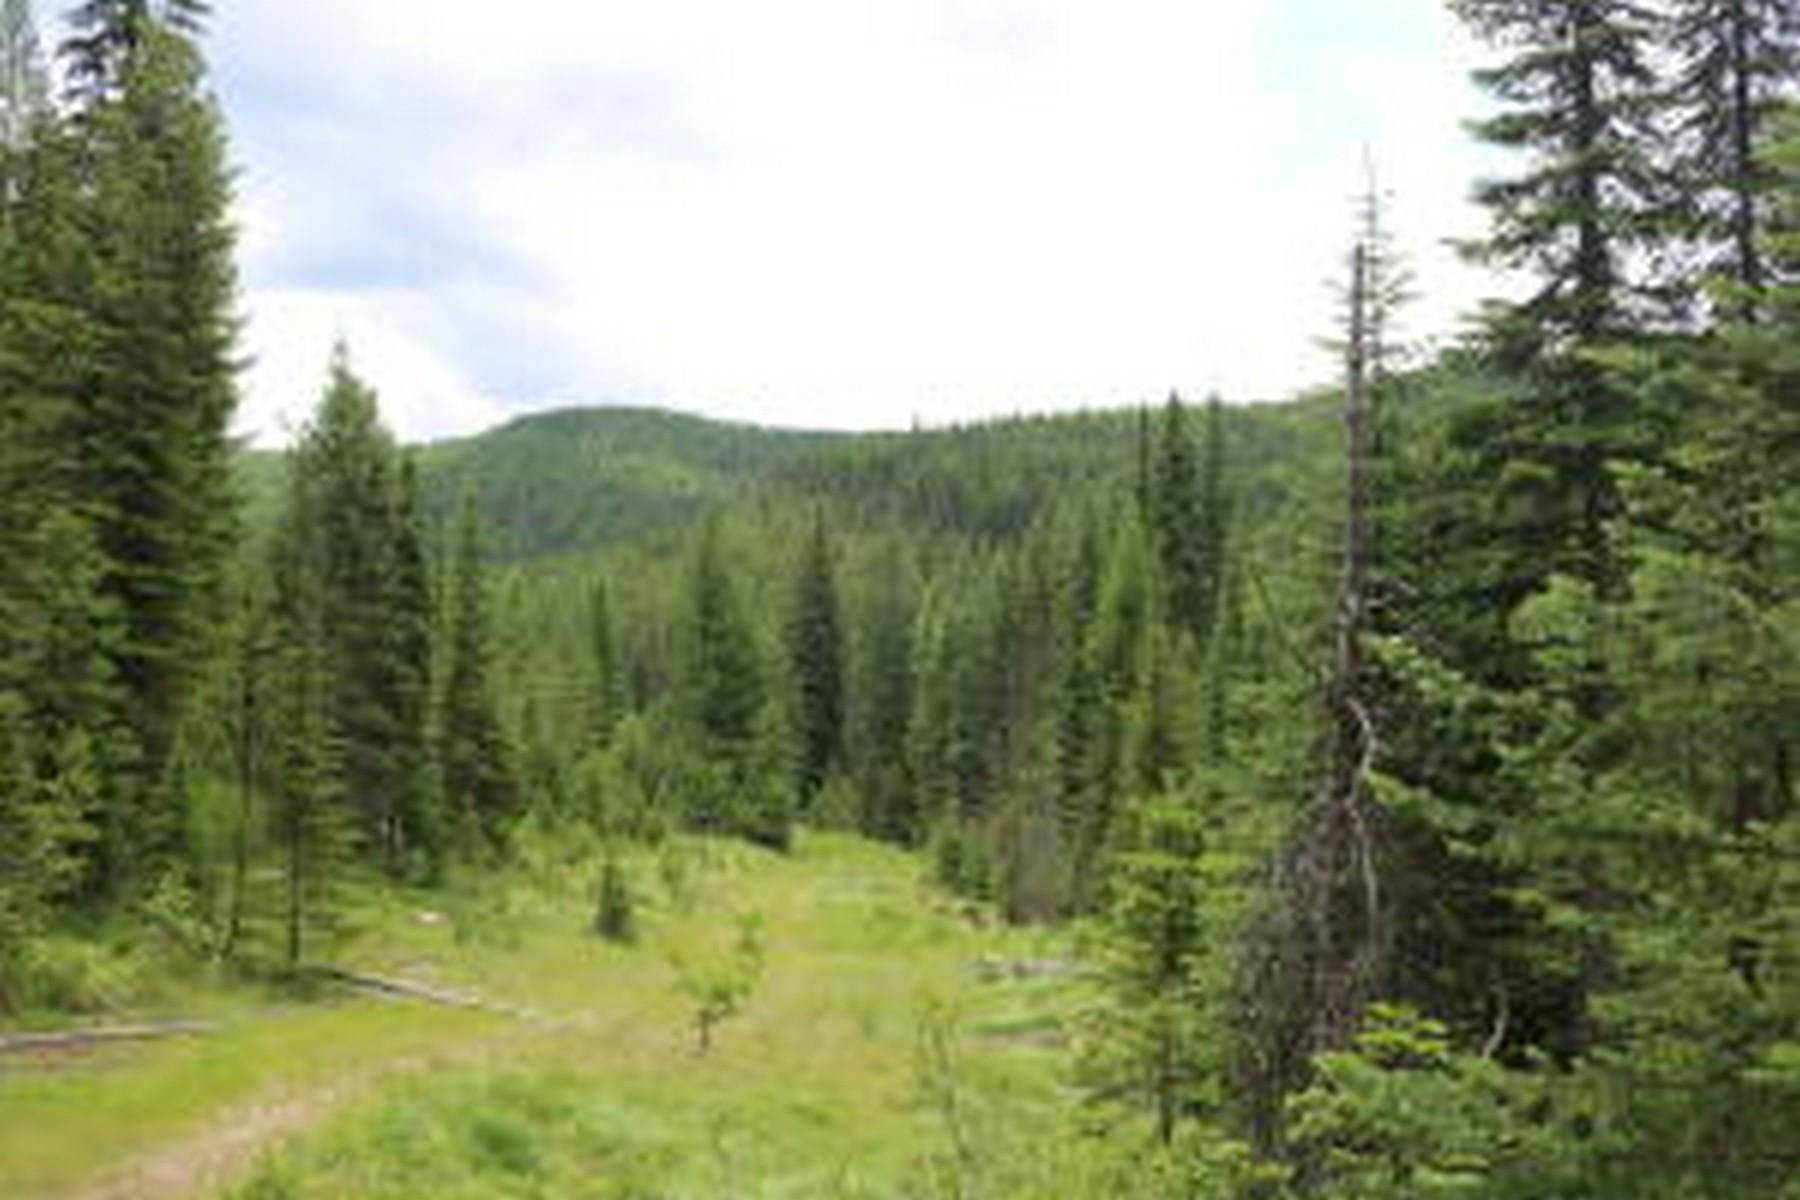 Property for Sale at 114a Packer Creek Haugan, Montana 59842 United States